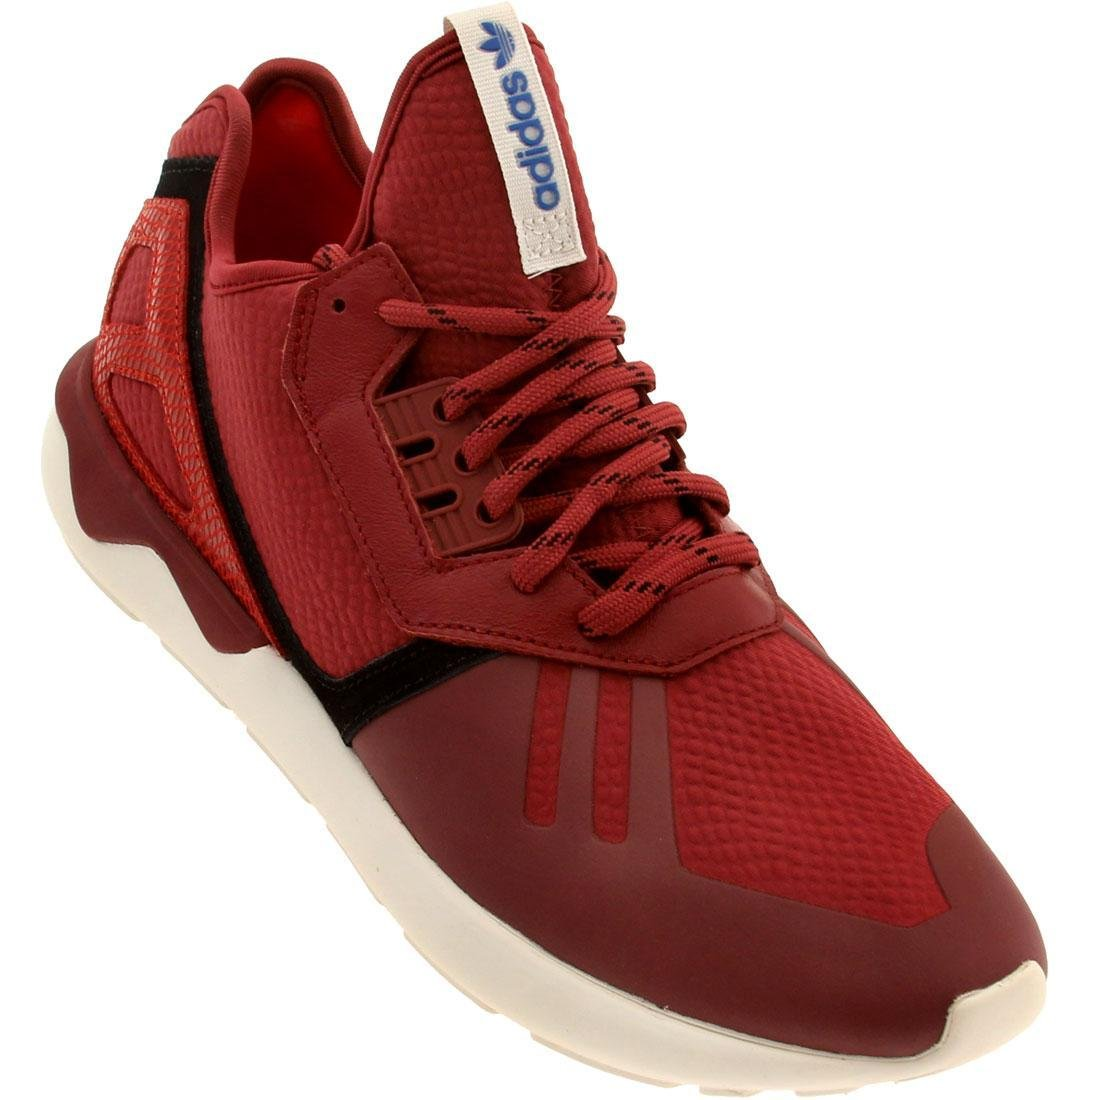 outlet store sale e97ac 54b2c adidas Tubular Runner Mens in Stnore/Red, 11